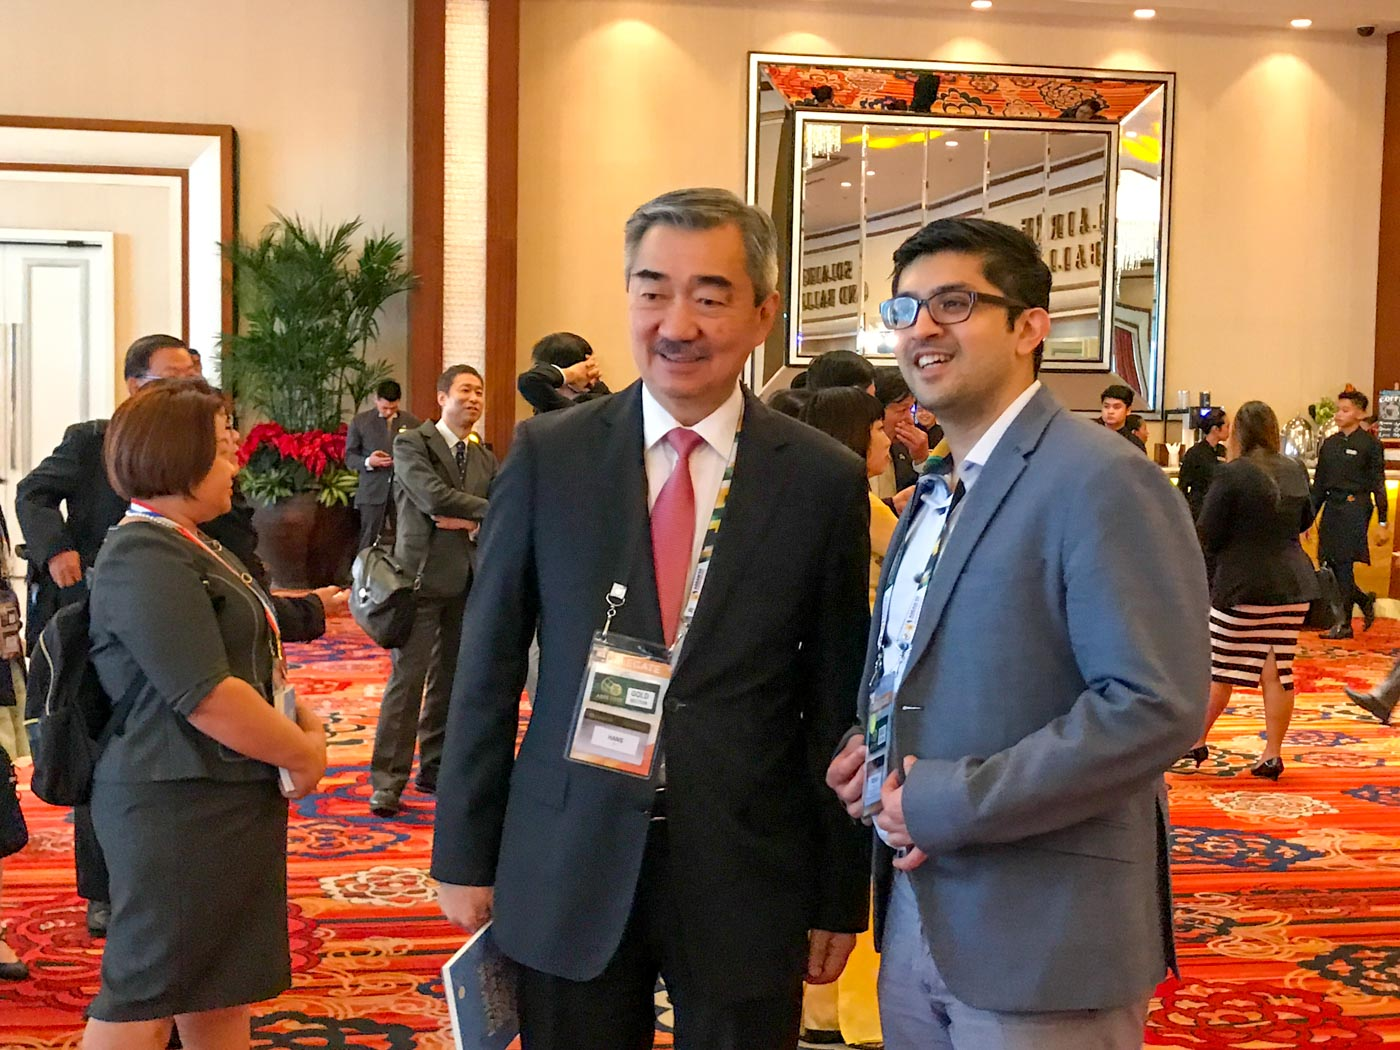 SPOTTED. Hans Sy of the SM Group is one of the gold ticket holders at the ASEAN Business and Investment Summit. Photo by Chrisee Dela Paz/Rappler